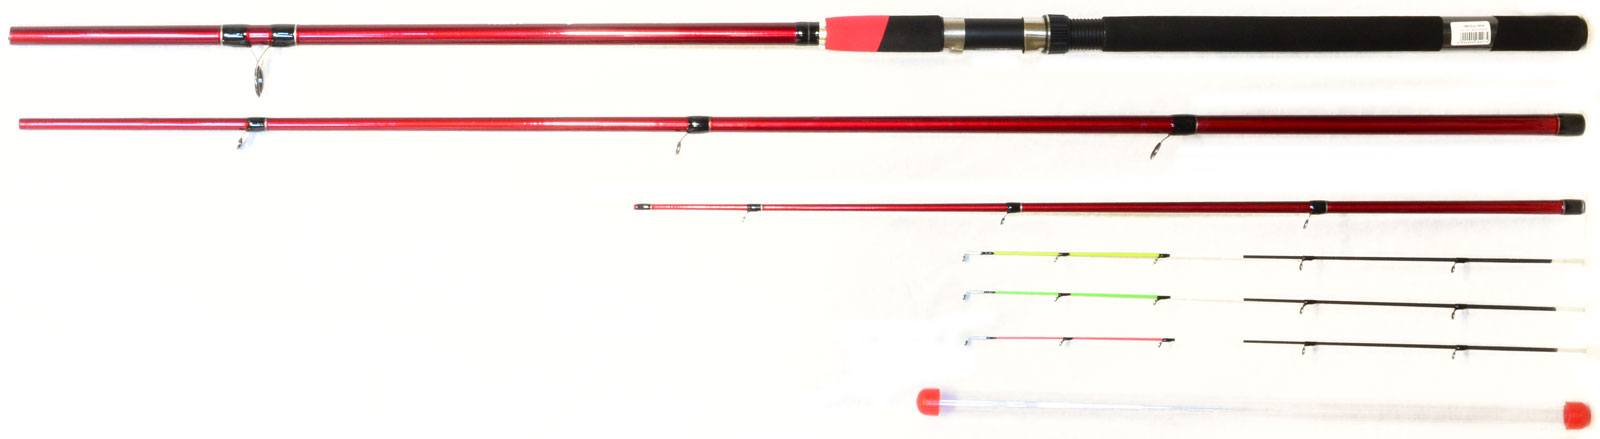 Удилище NEXT Fishing Accord AGAT HEAVY FEEDER